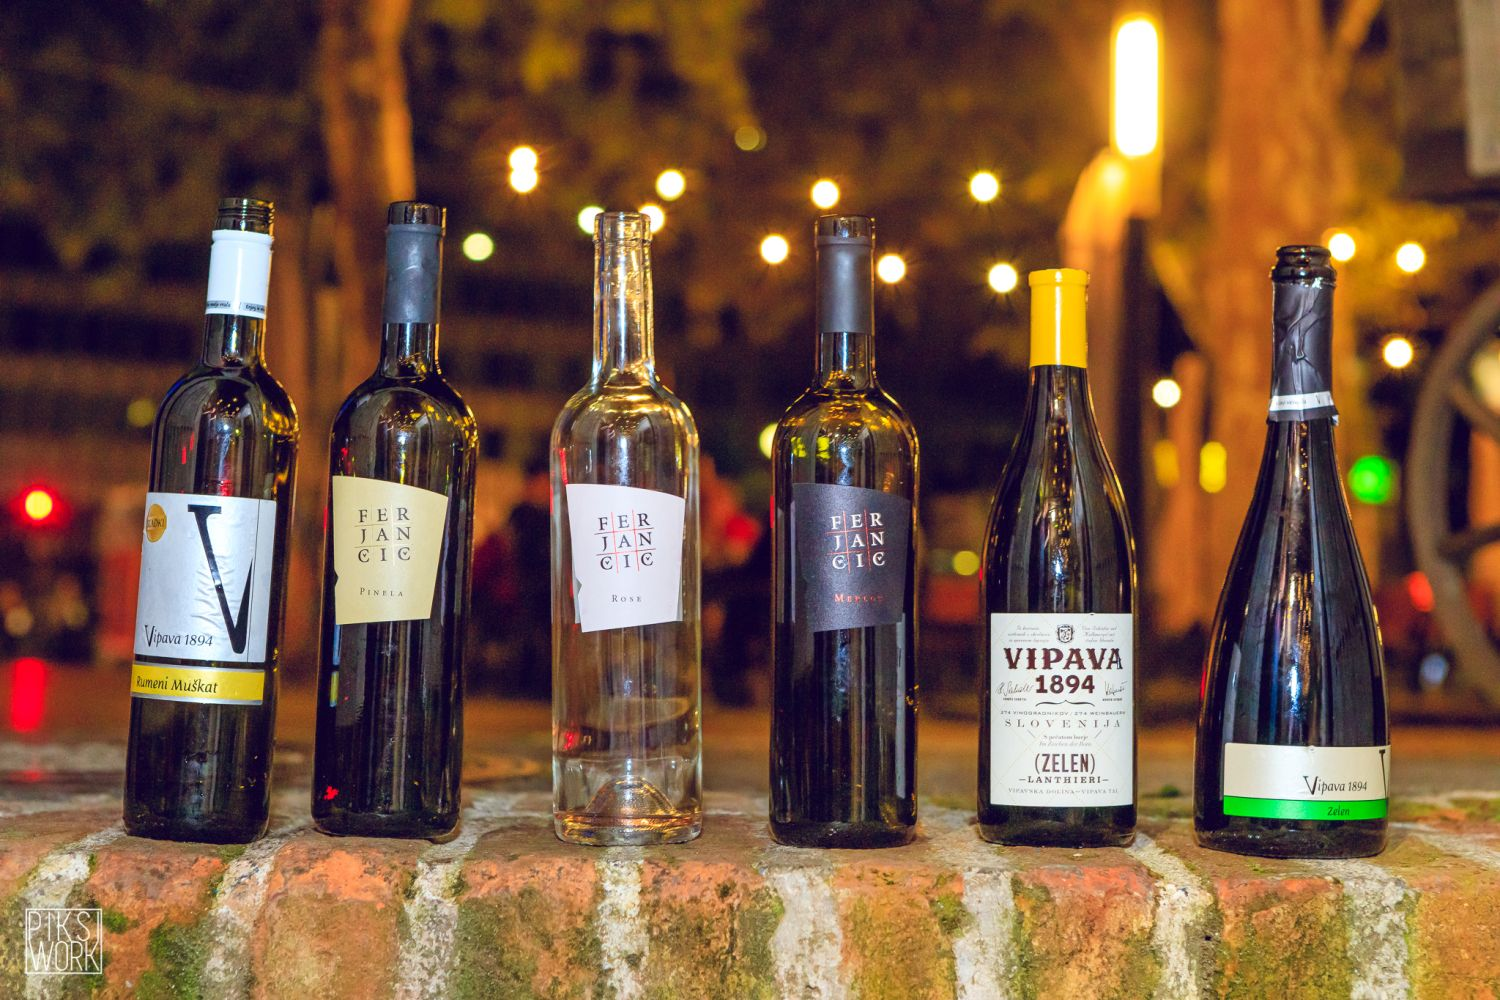 Six bottles of wine from the Vipava Valley in Slovenia